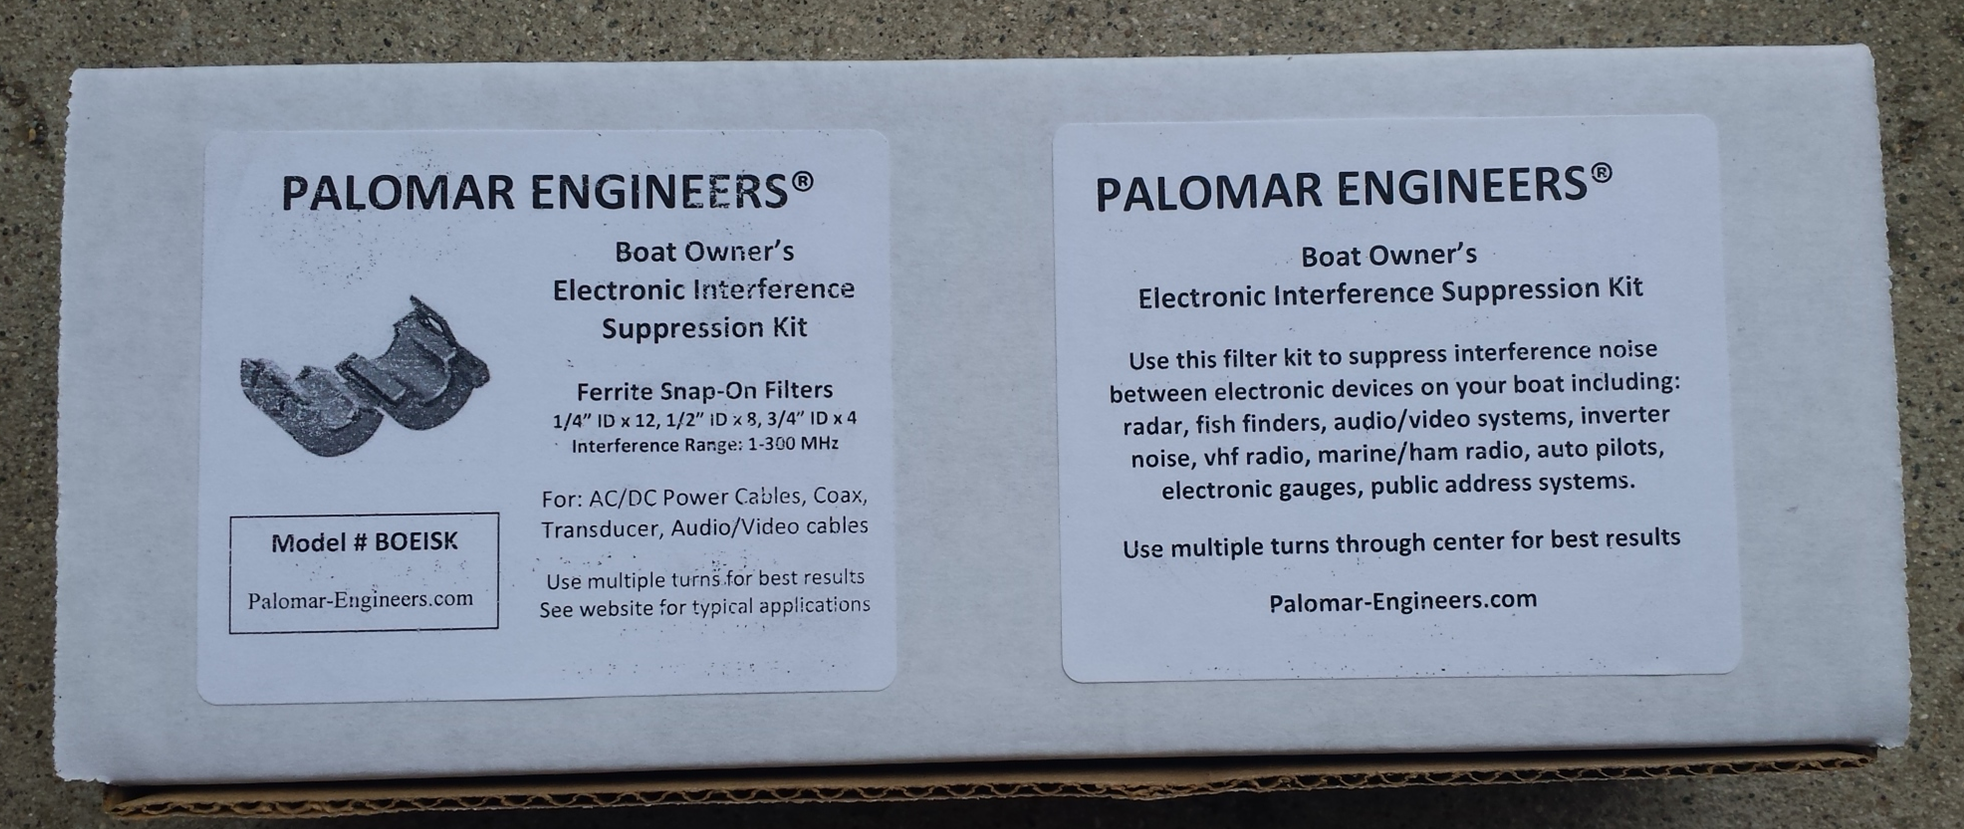 Marine/RV Owner's Electronic Interference Suppression Kit RFI-Boat